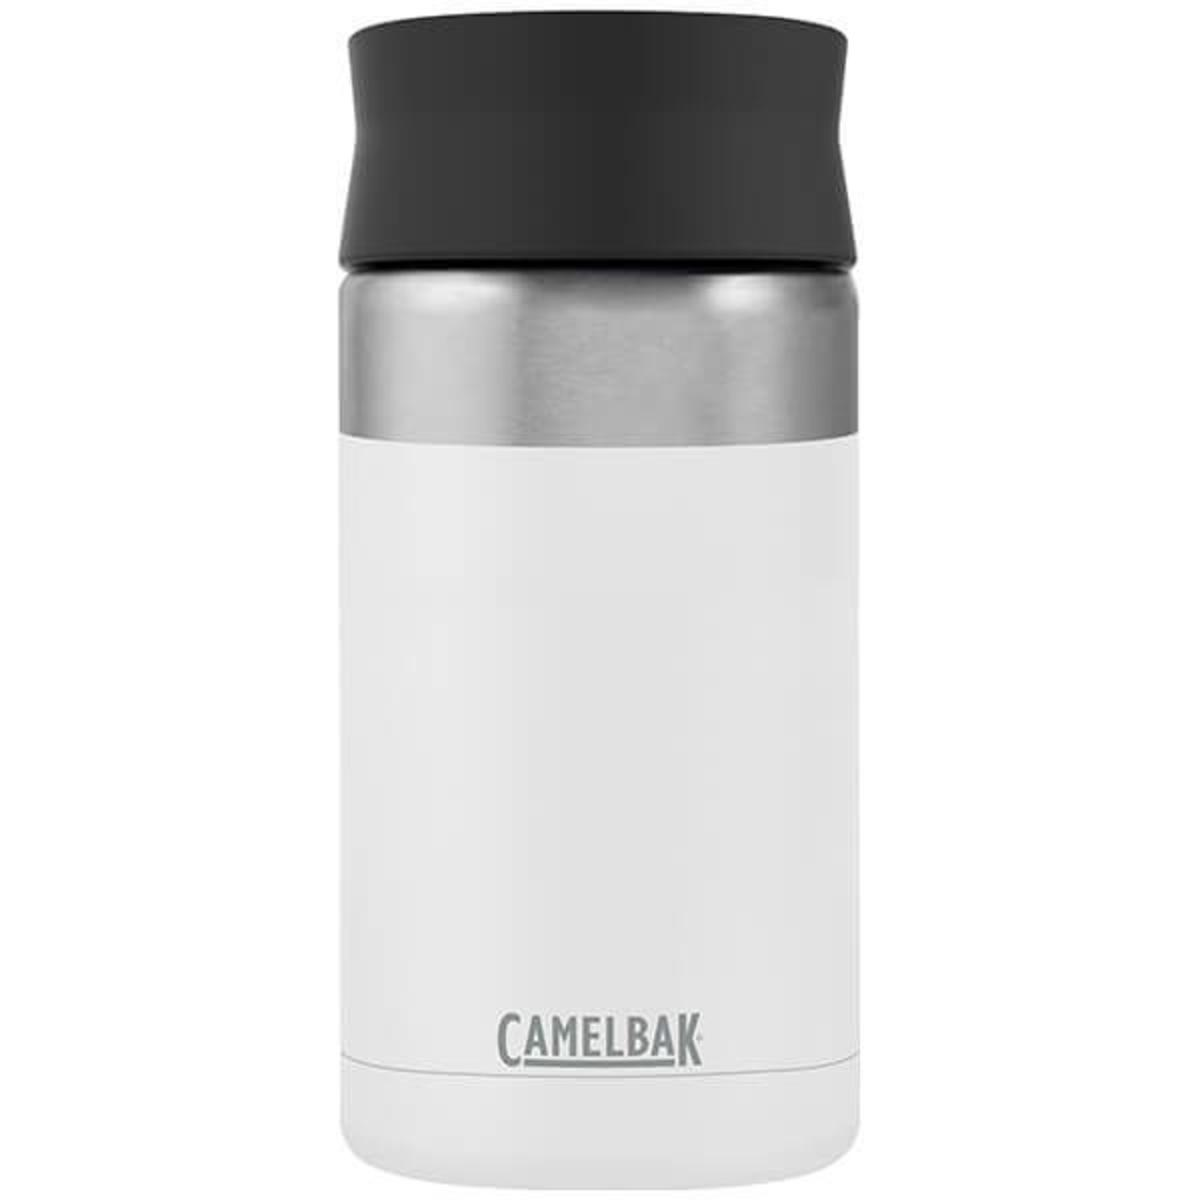 Camelbak Hot Cap Stainless Steel Vacuum Insulated 12oz Bottle